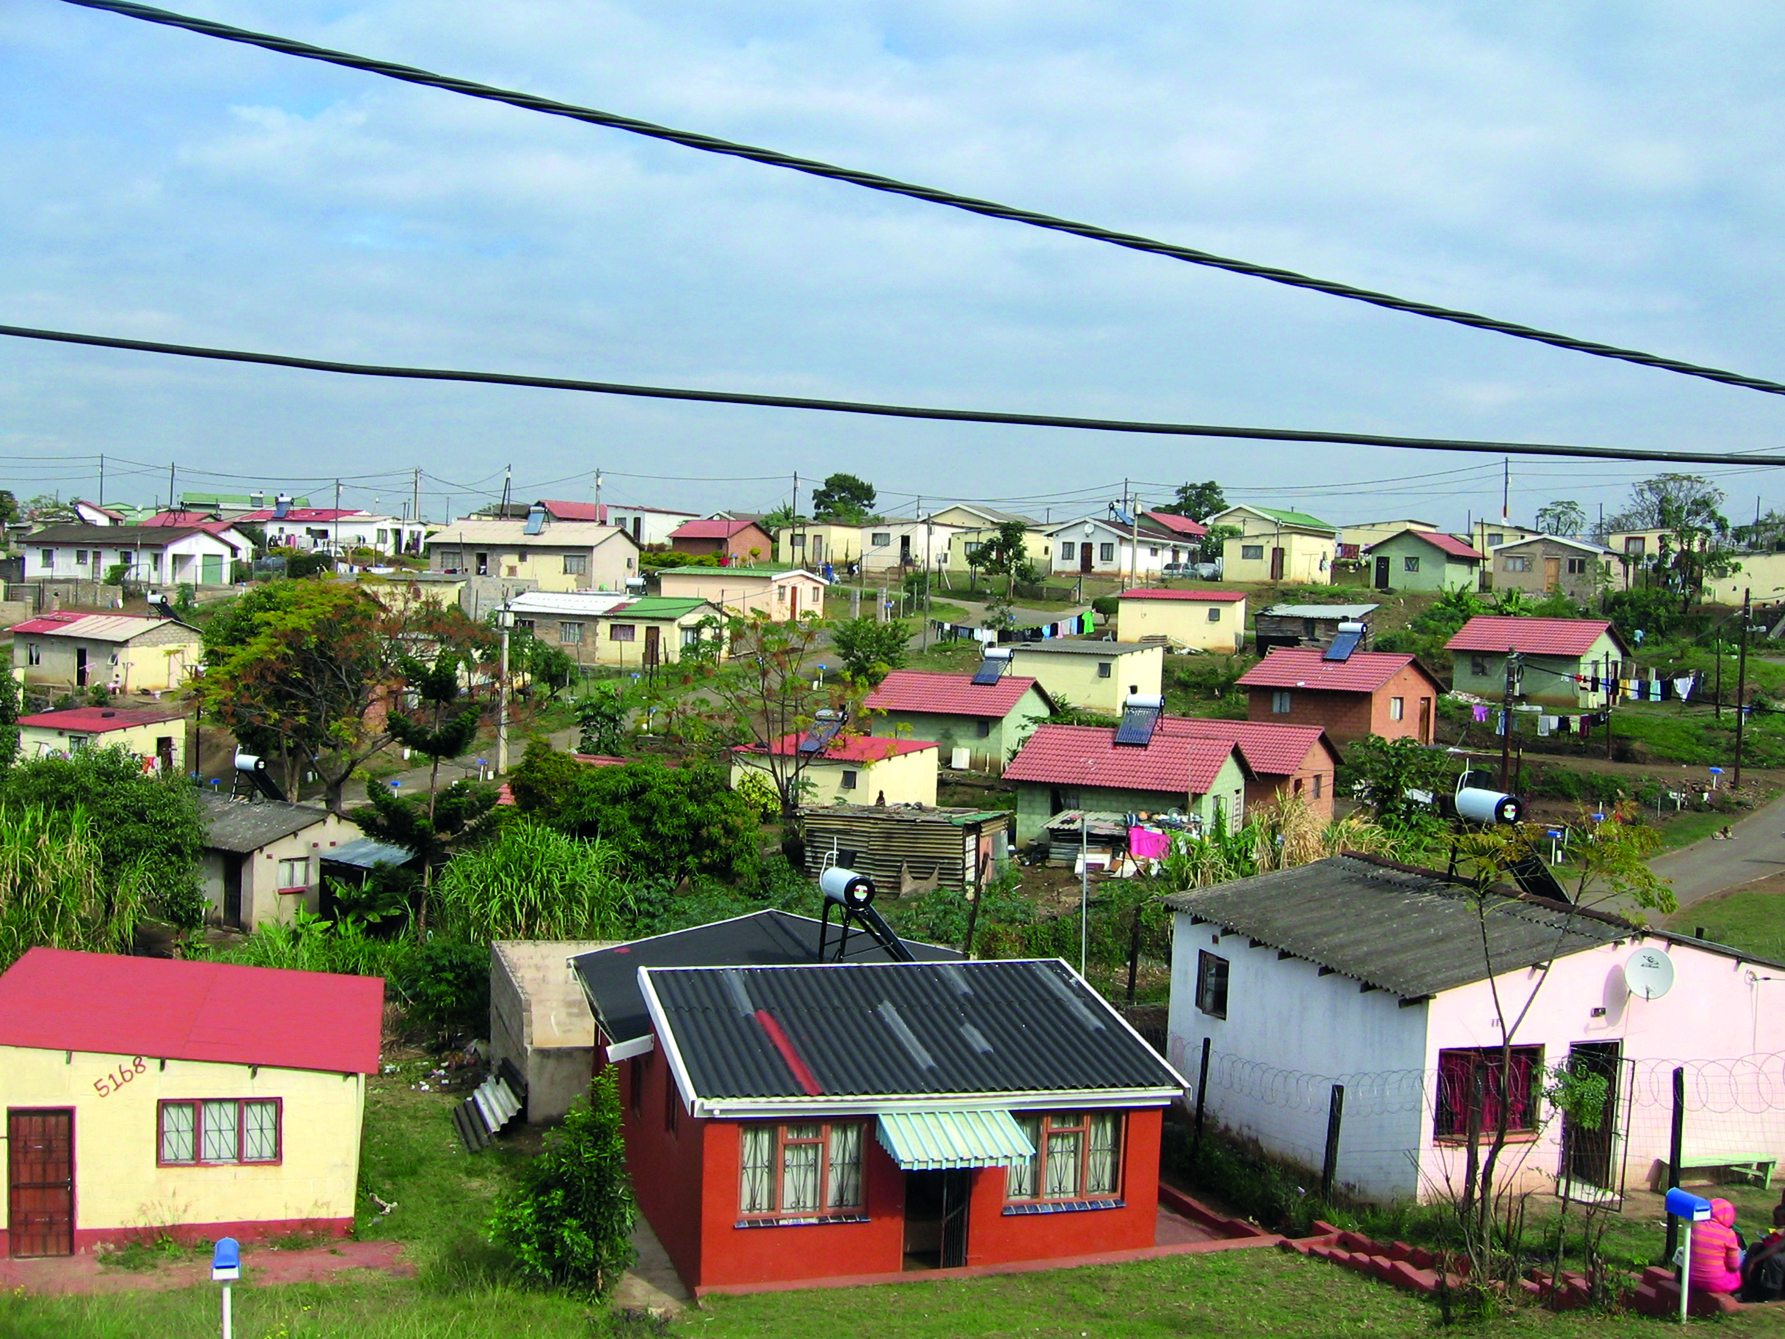 Image: Solar-heated water is made possible through a government initiative in eThekwini Municipality